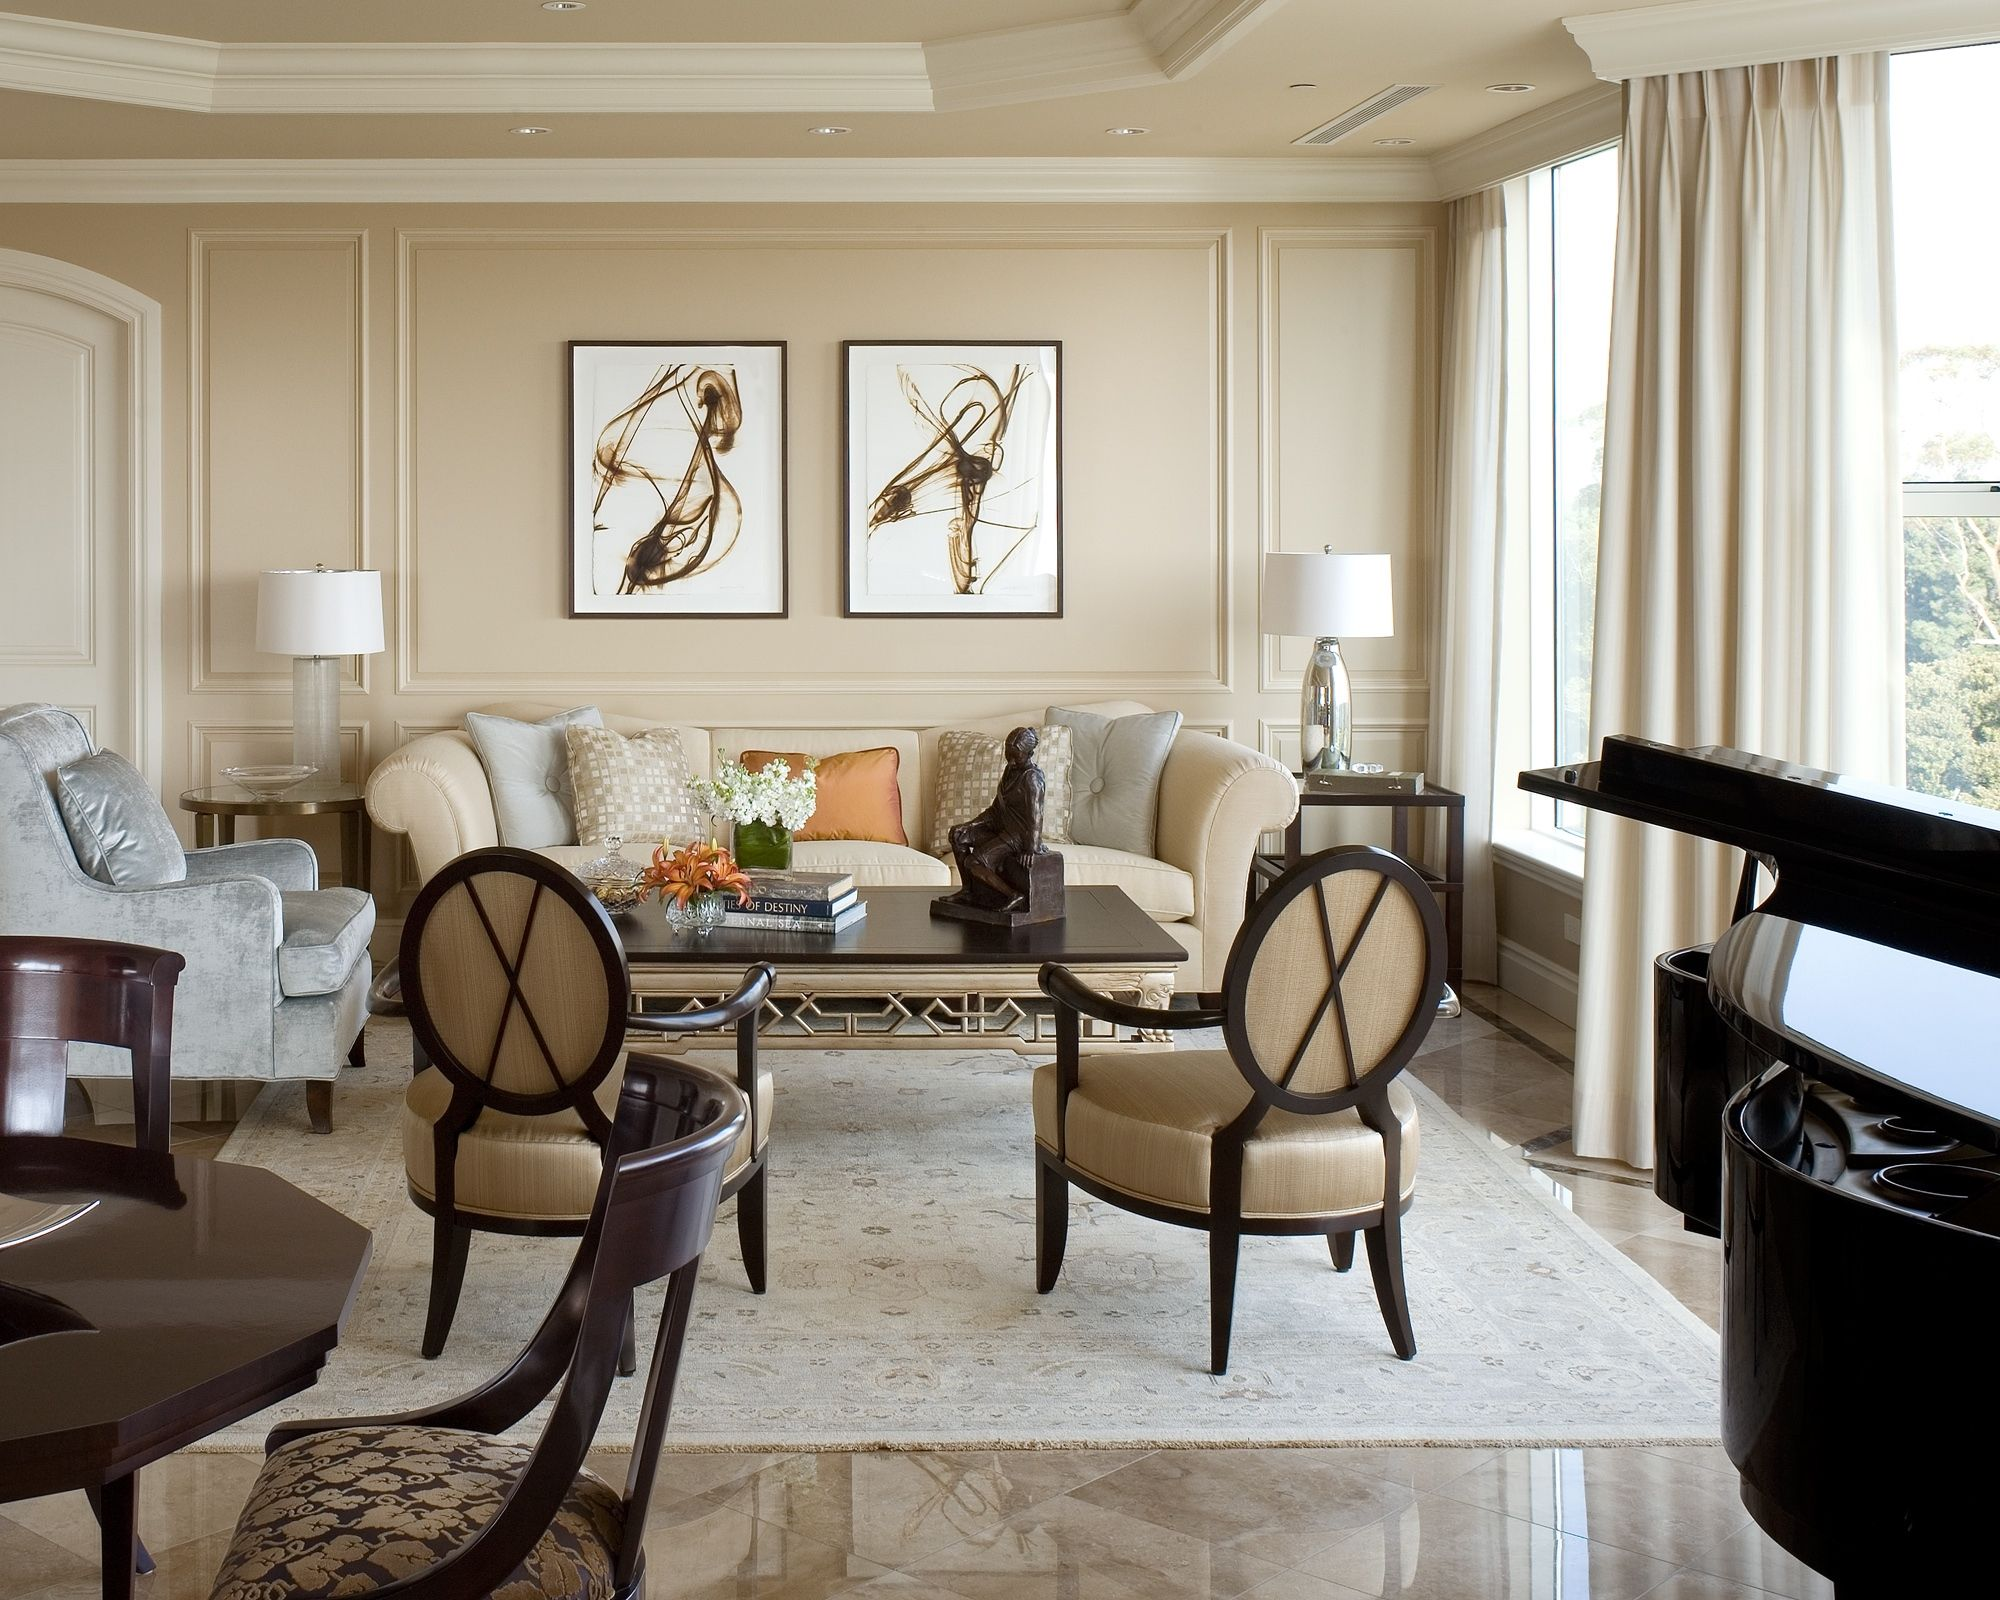 ... Luxury Condo San Diego How To Interior Design Gifts For Interior  Designers Amusing Transitional Interior Design Interior Interior Design  Rochester Ny.